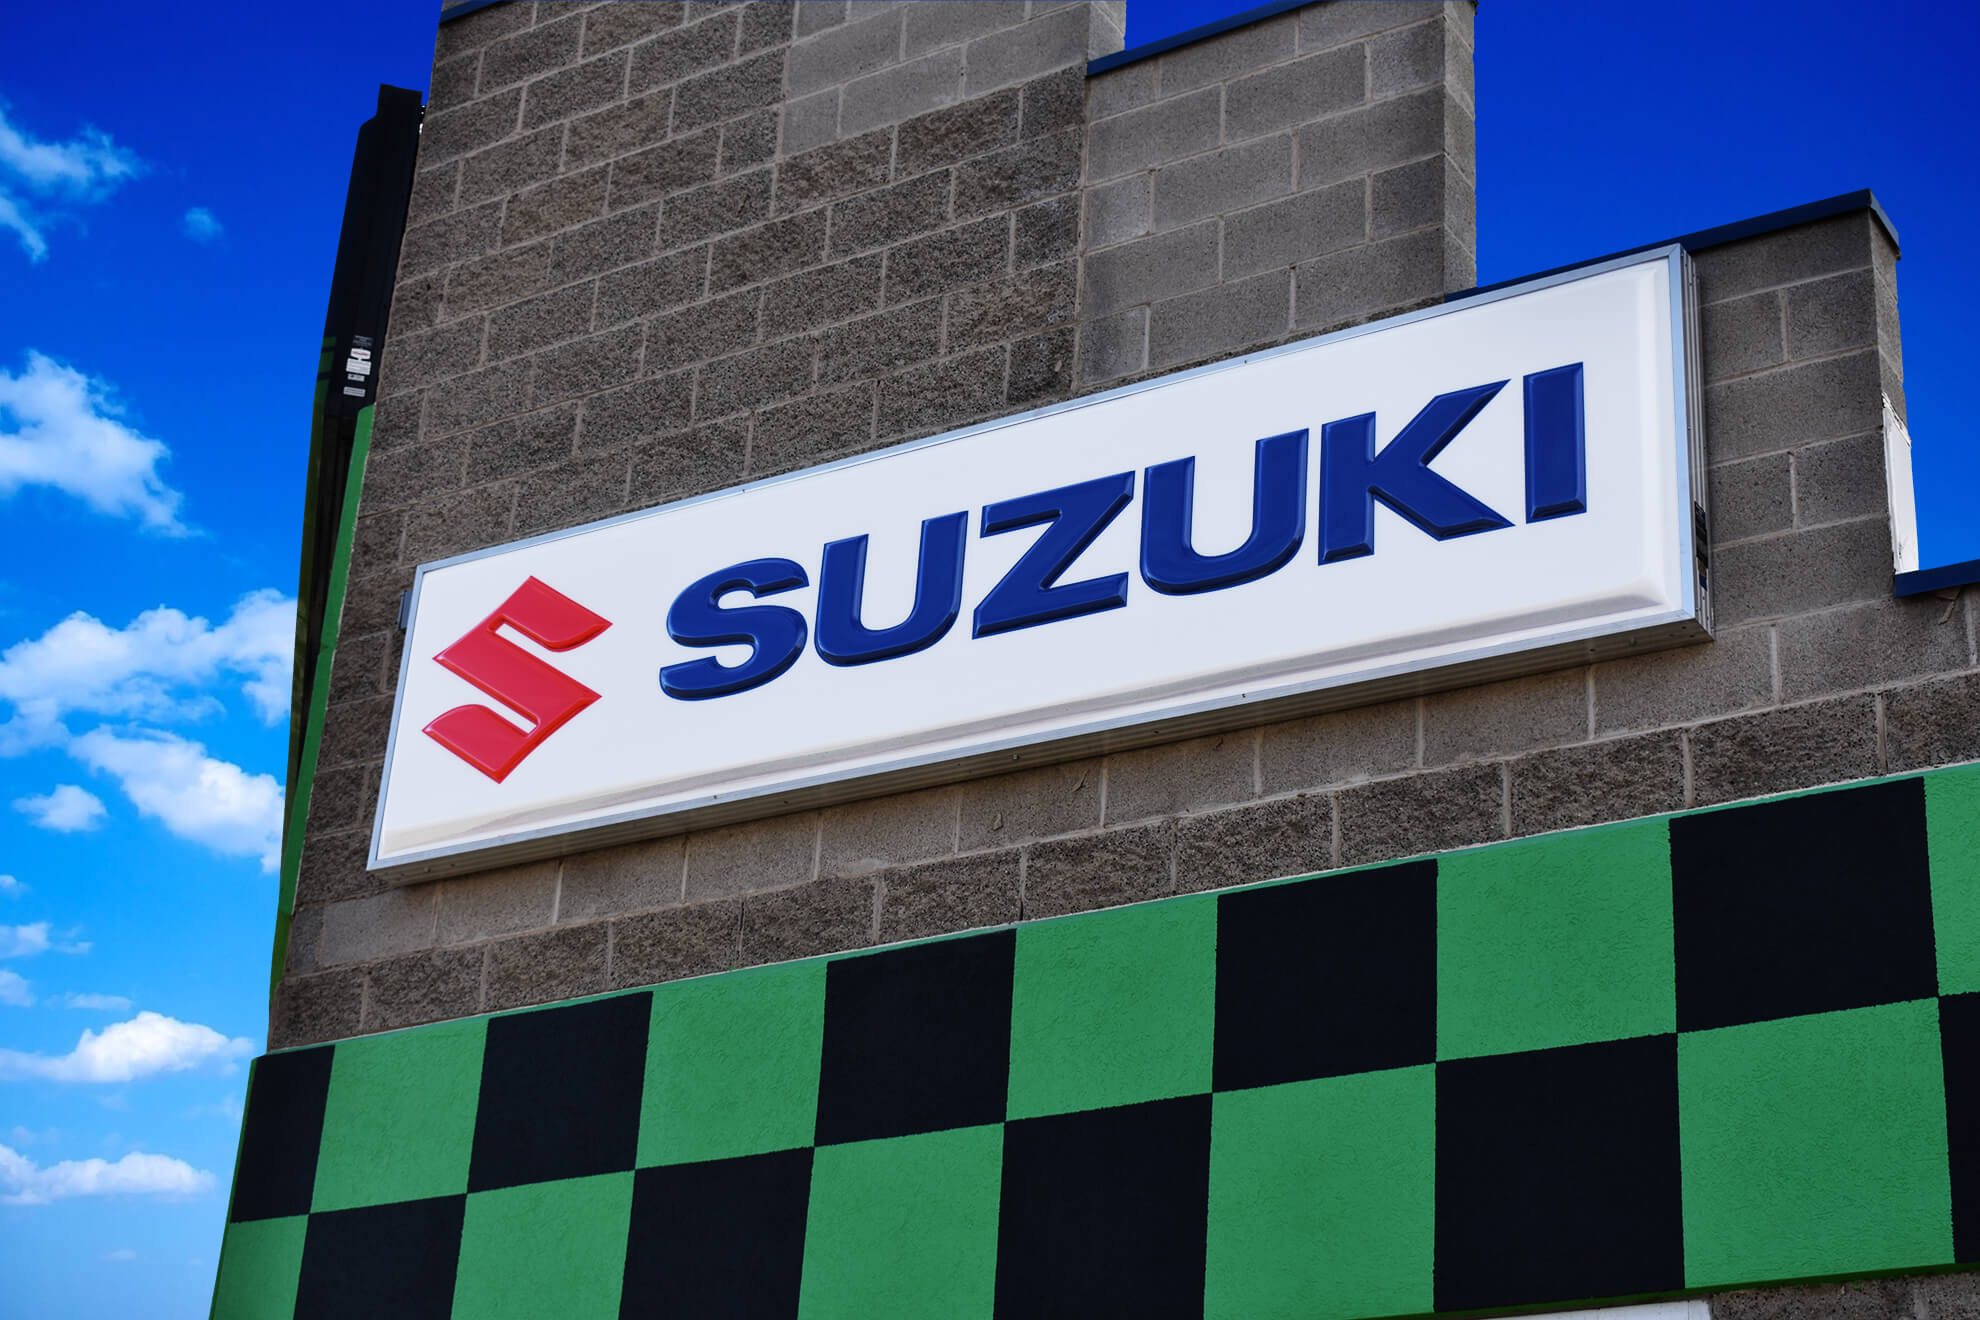 Thermoformed Suzuki sign.